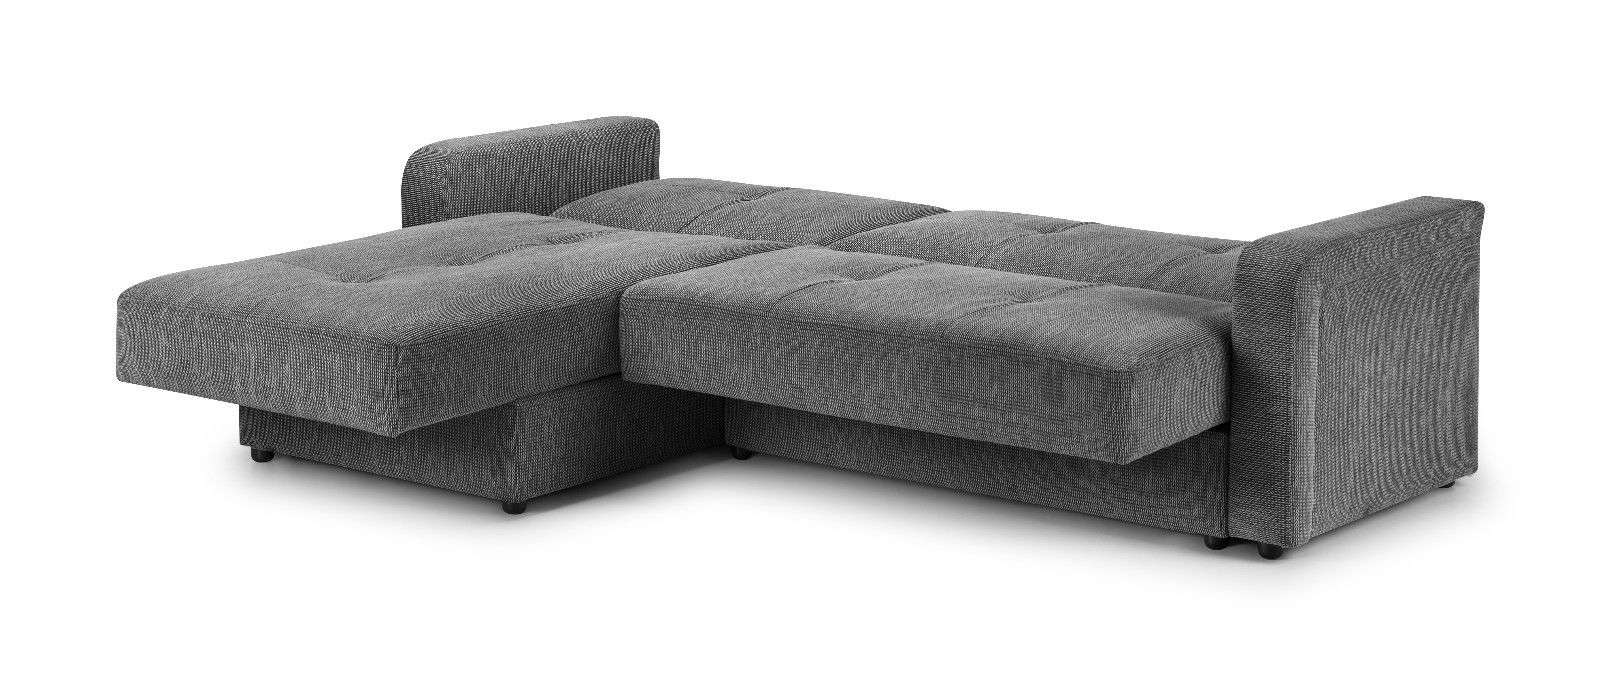 Corner Sofa Bed Grey Turin Sofas Less Fashion